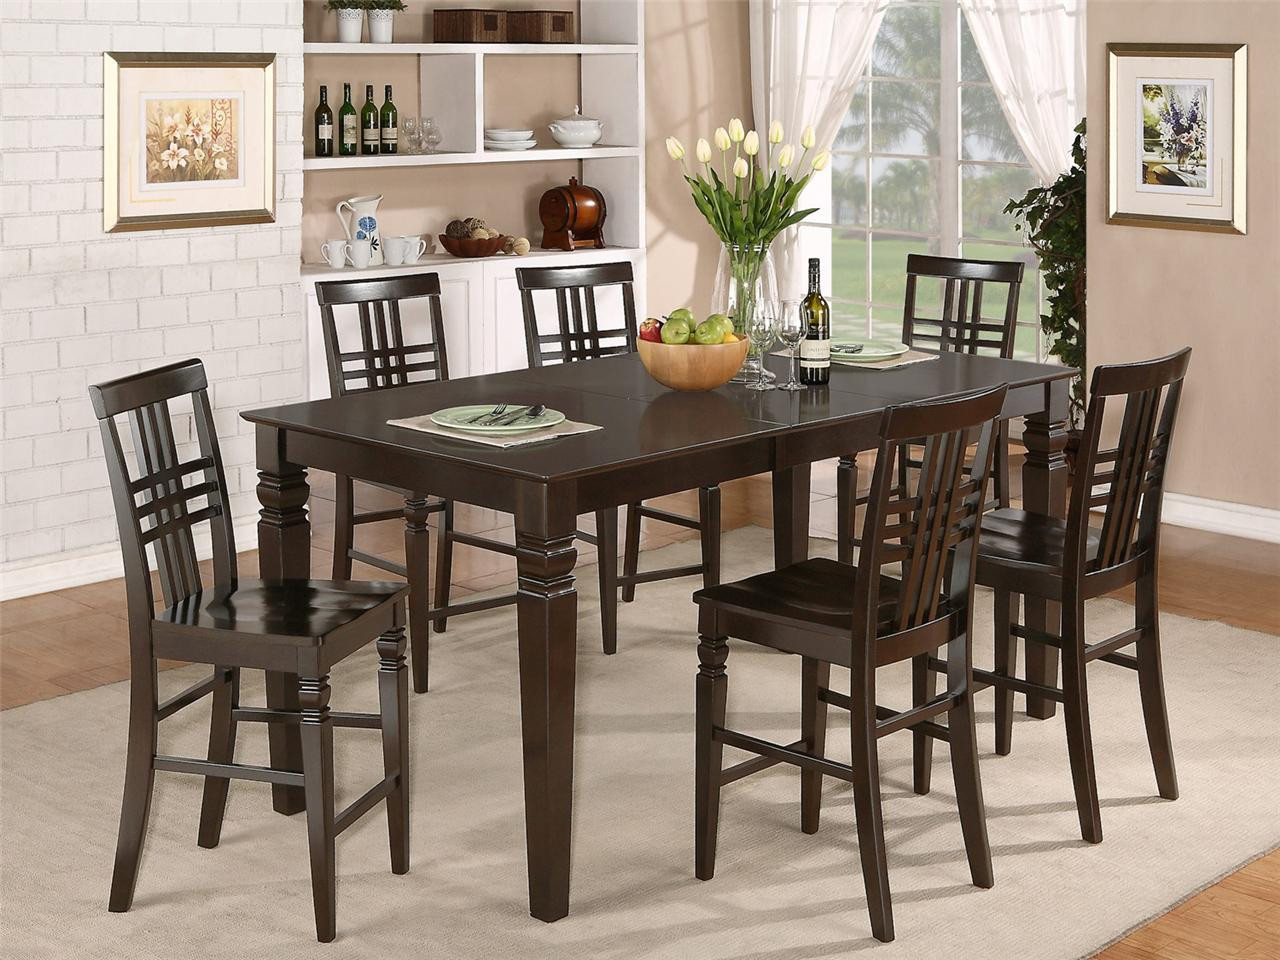 Best ideas about Bar Height Dining Table . Save or Pin 7PC RECTANGULAR COUNTER HEIGHT DINING ROOM TABLE SET & 6 Now.